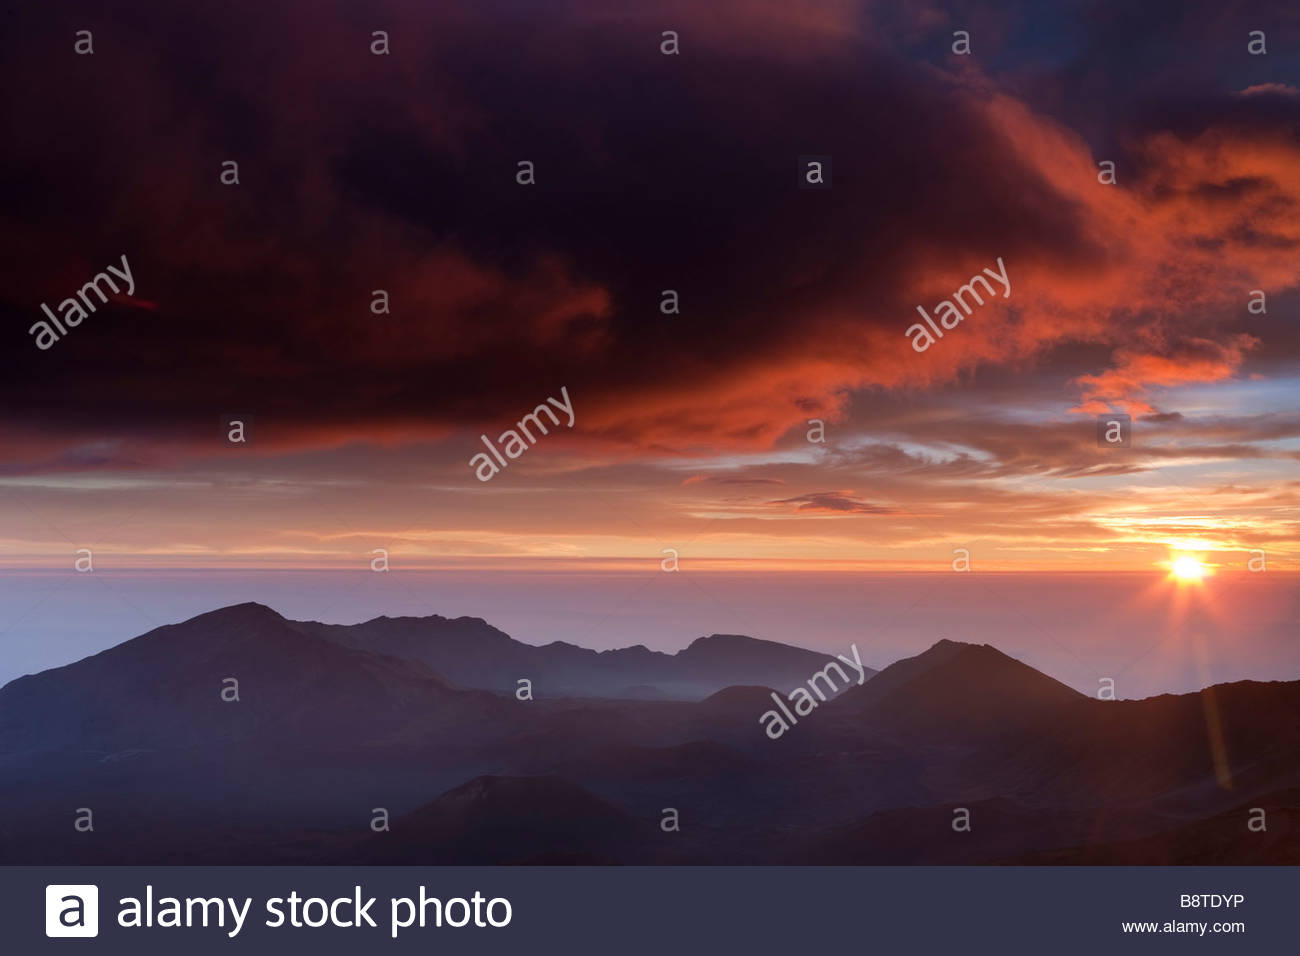 The sun rises over the Pacific Ocean, lighting up the sky above the crater in Haleakala National Park, Maui, Hawaii. - Stock Image